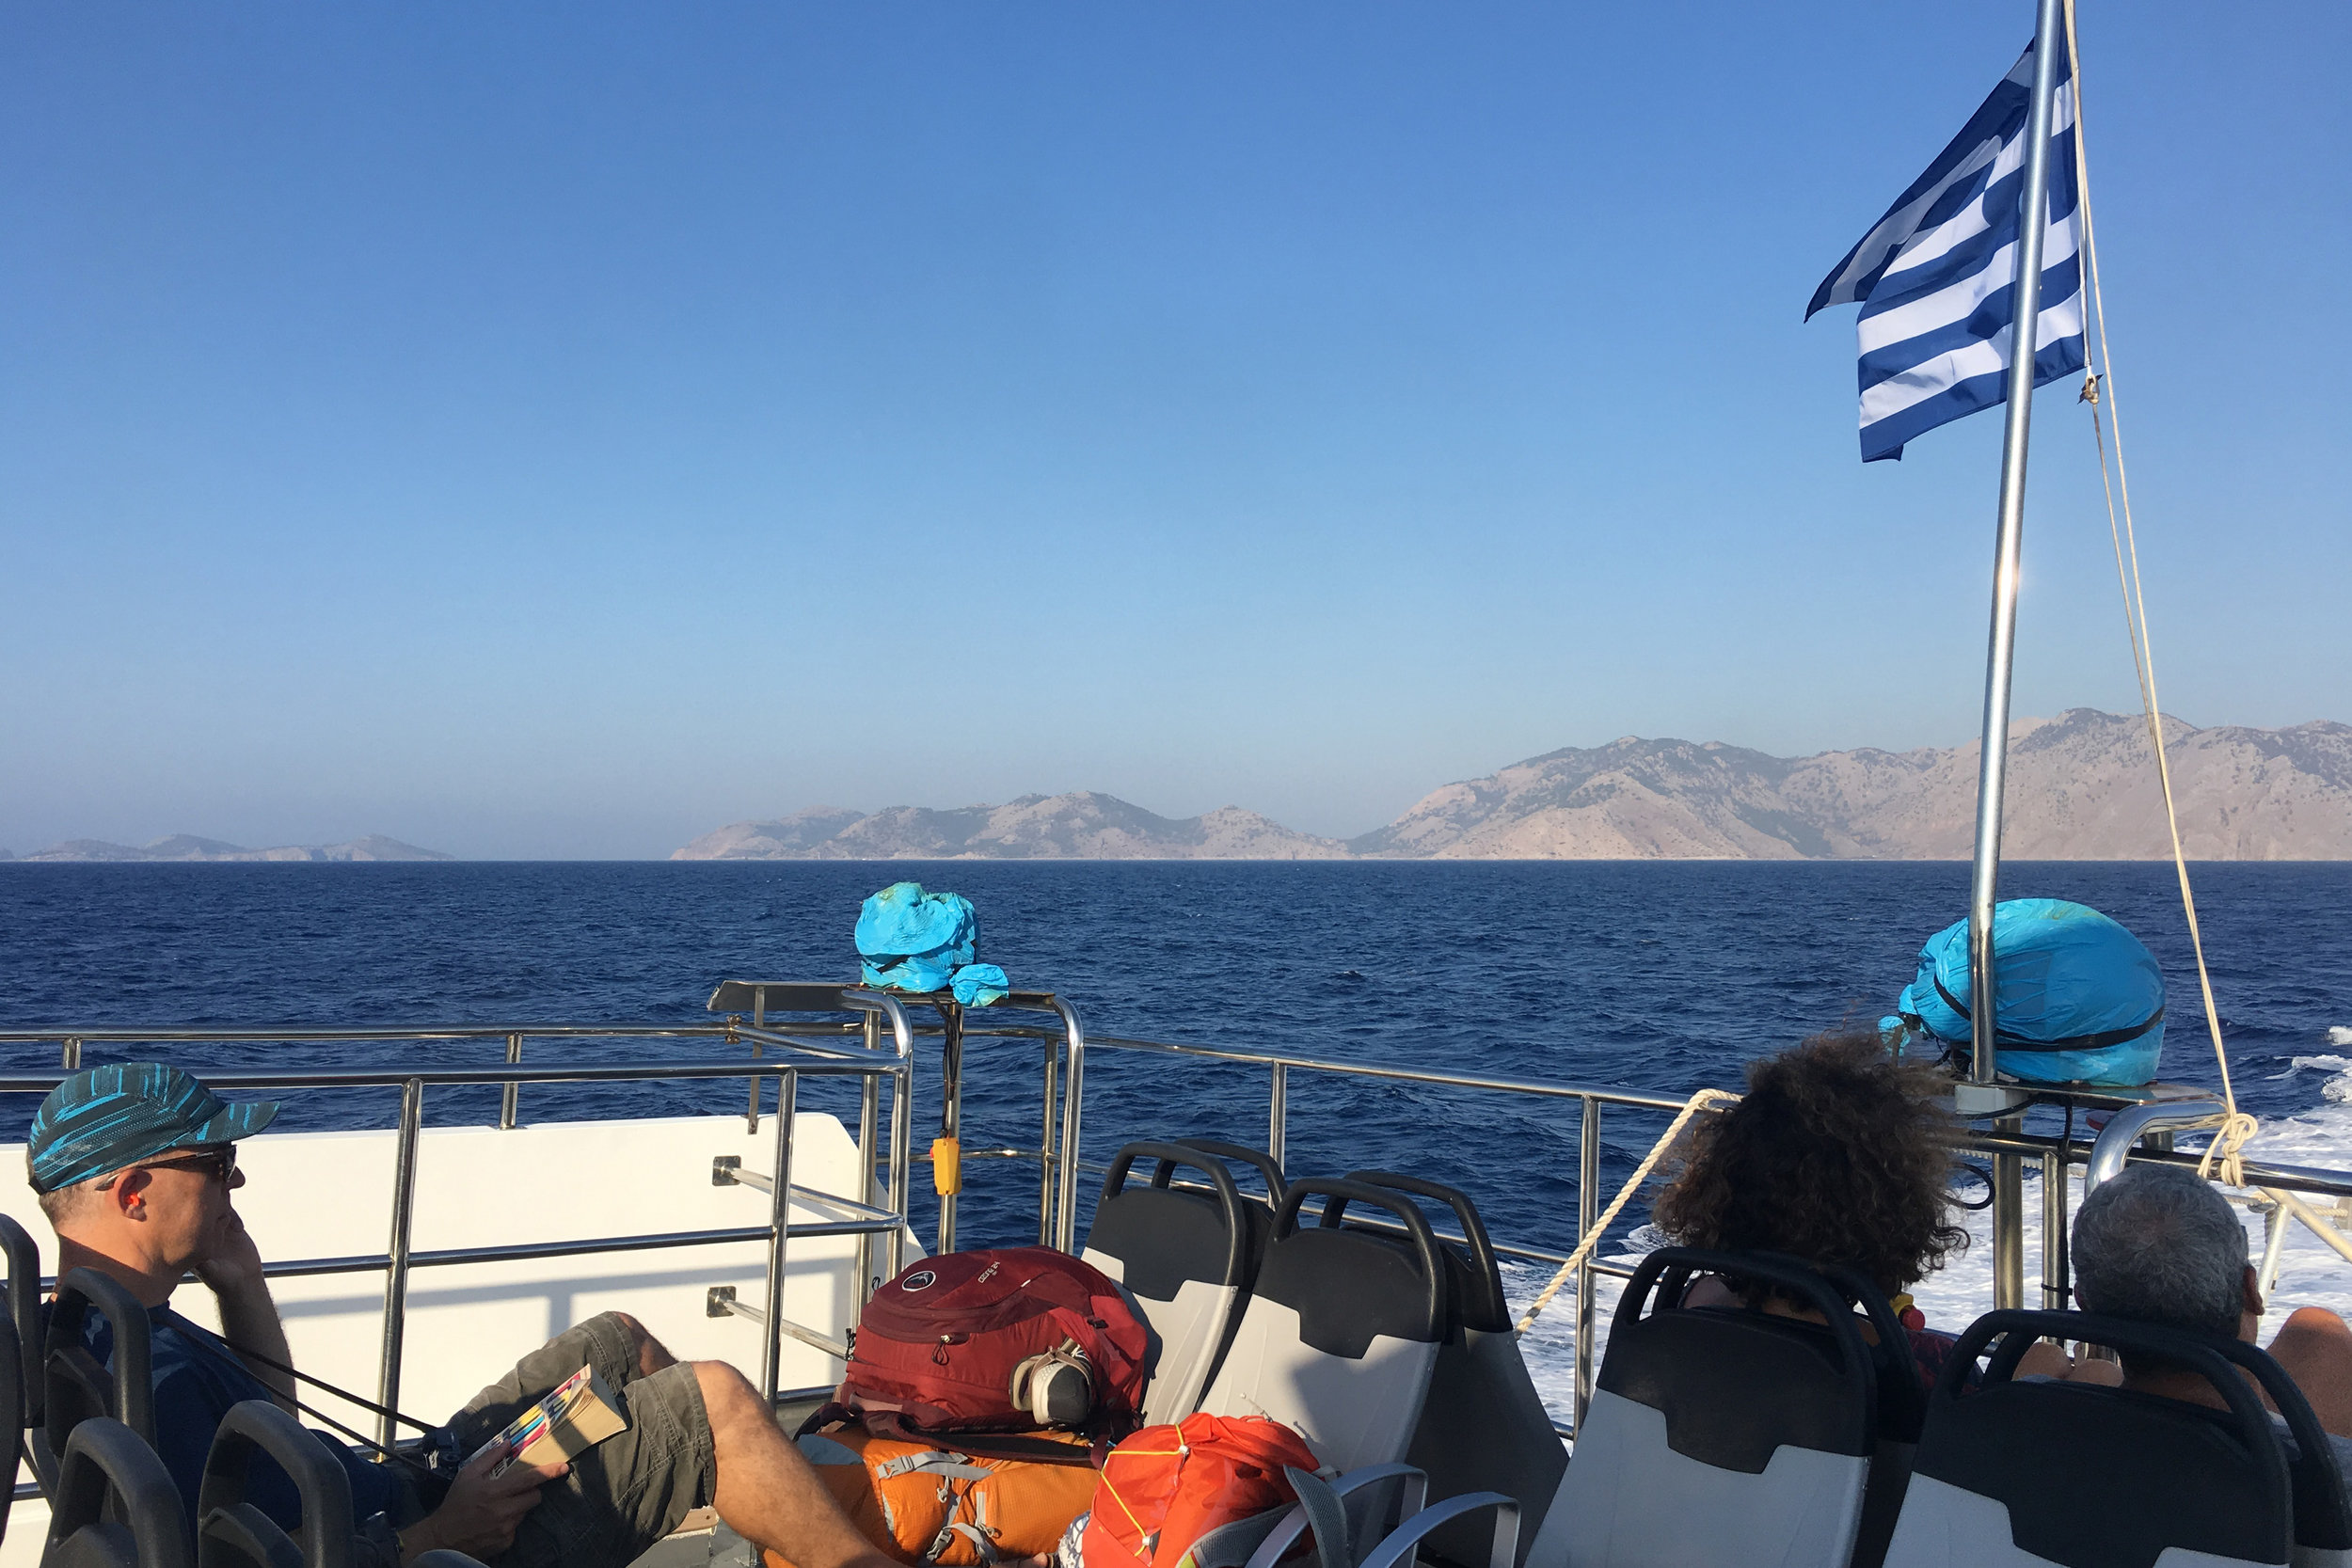 On the ferry from Symi to Rhodes